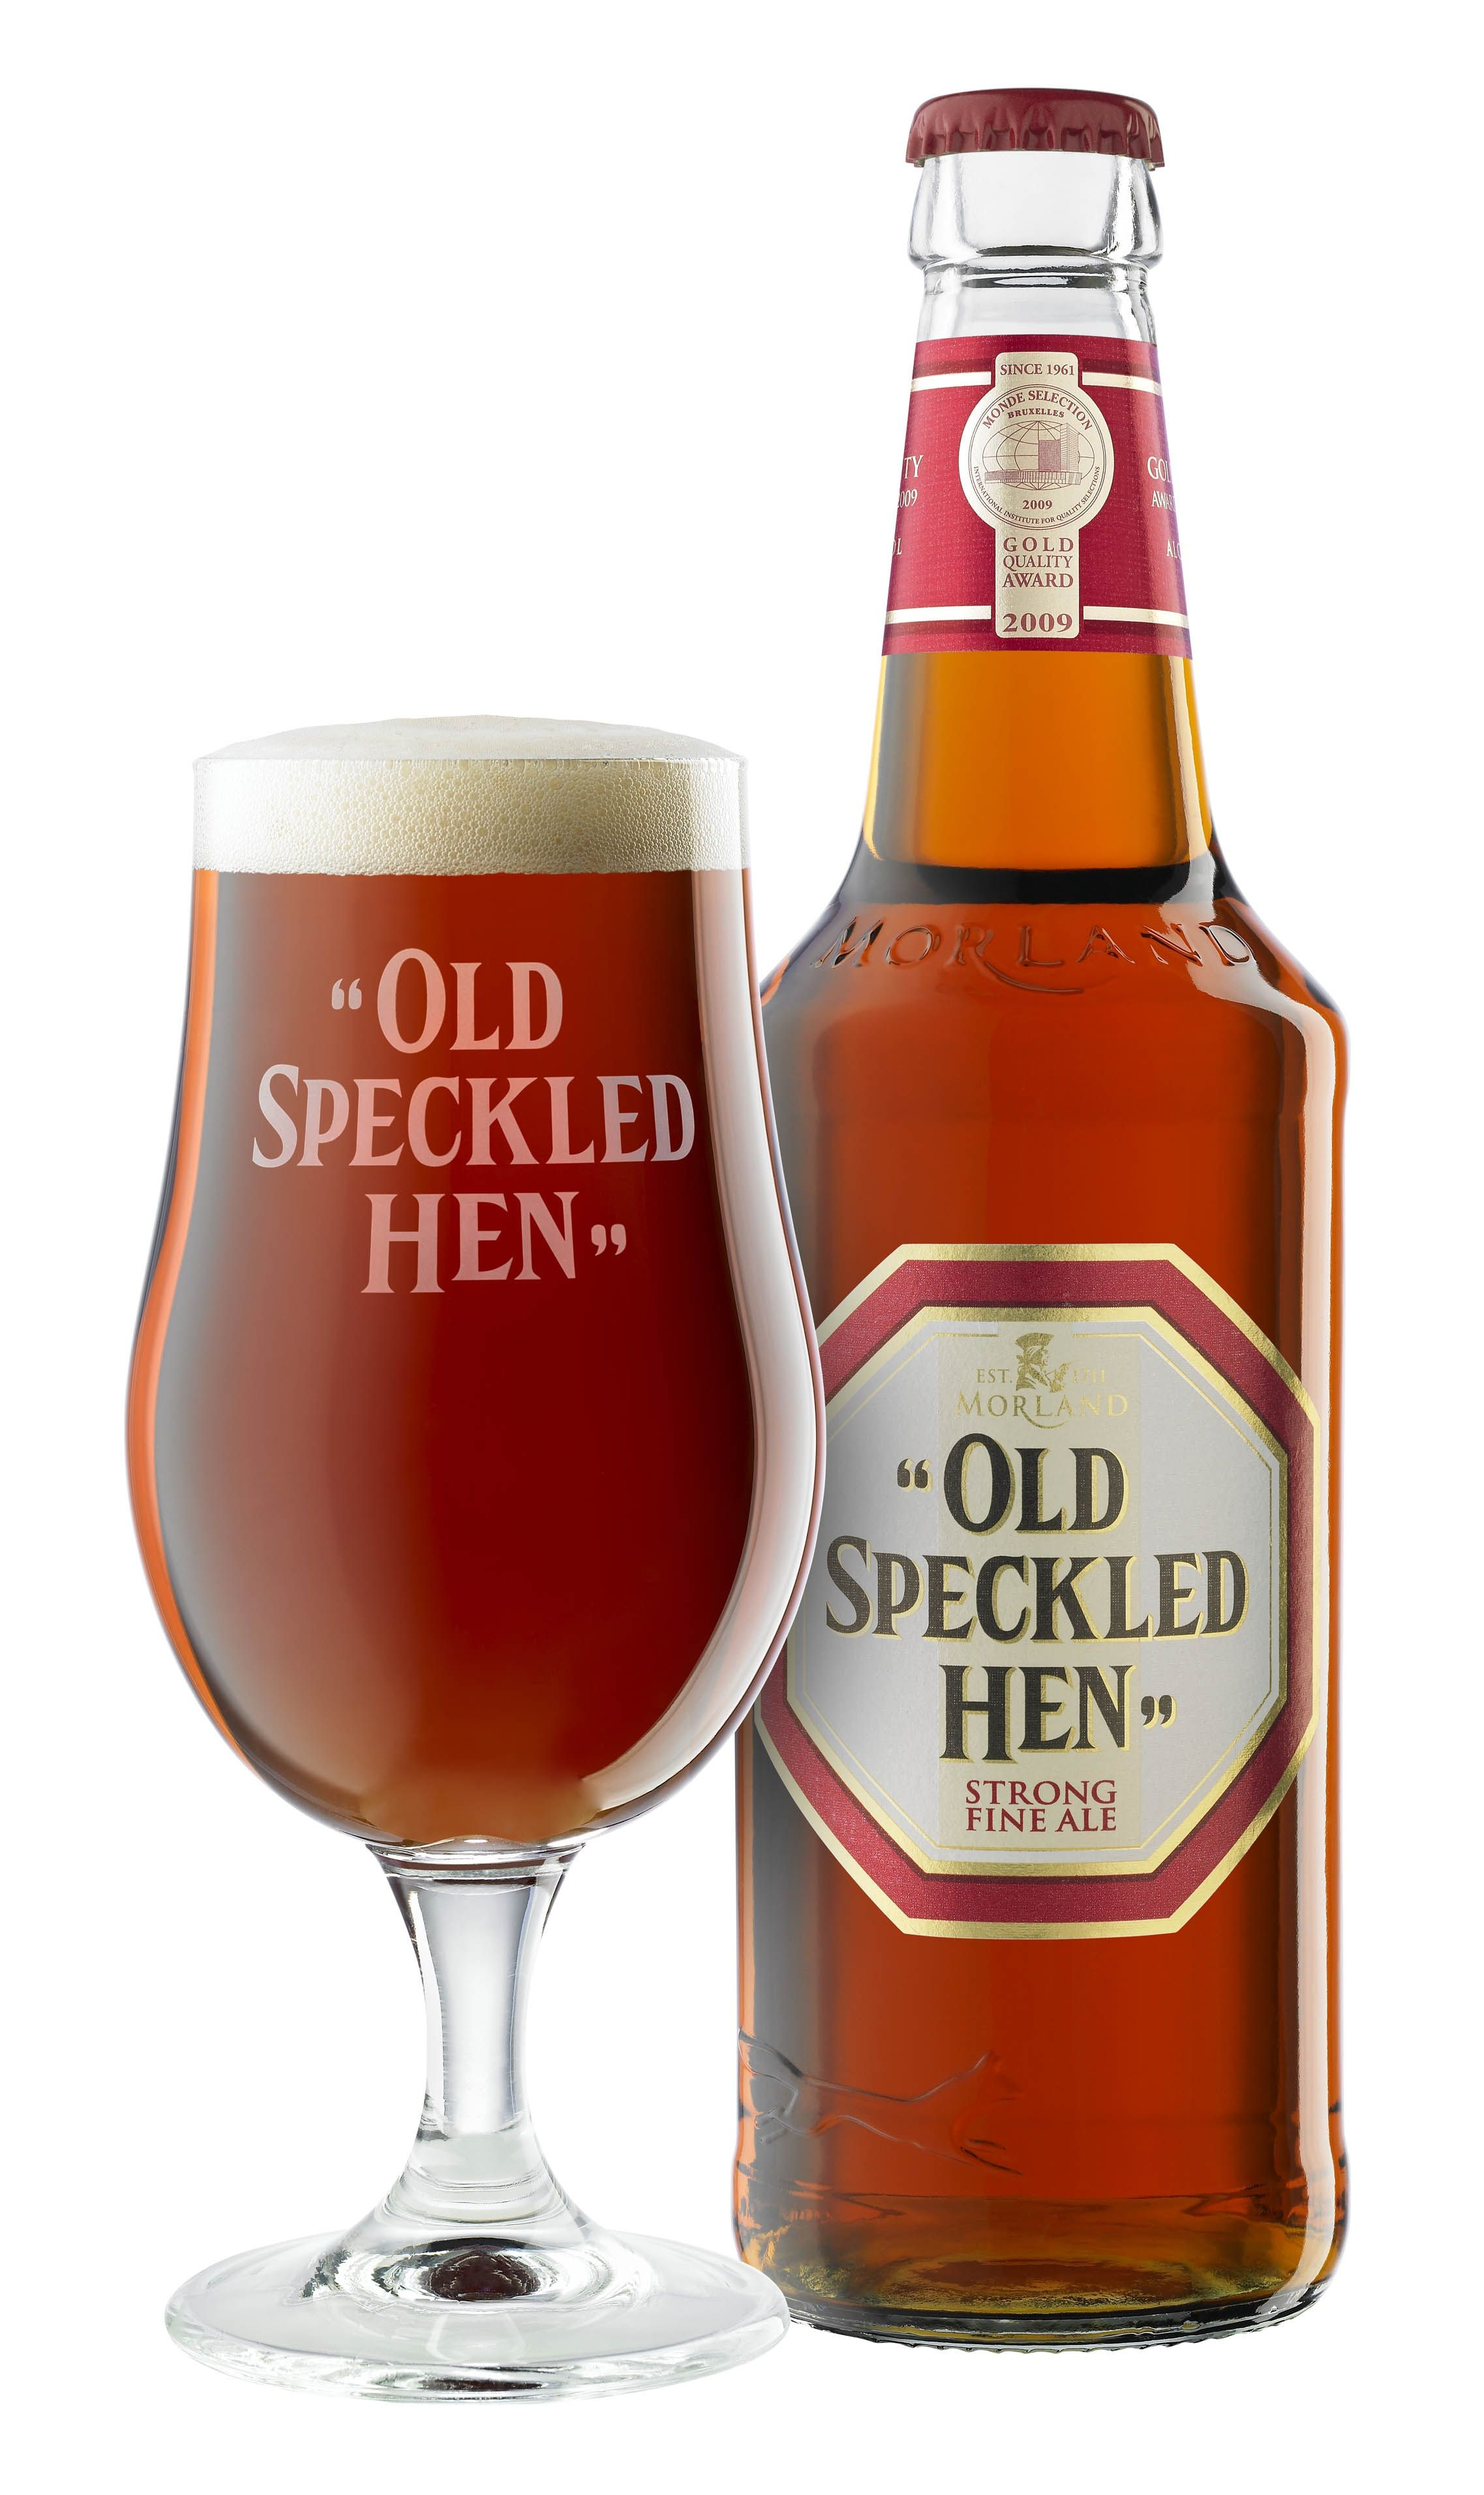 Old Speckled Hen Fine Strong Ale Uk Beer Brands Drinking Beer Wine And Beer